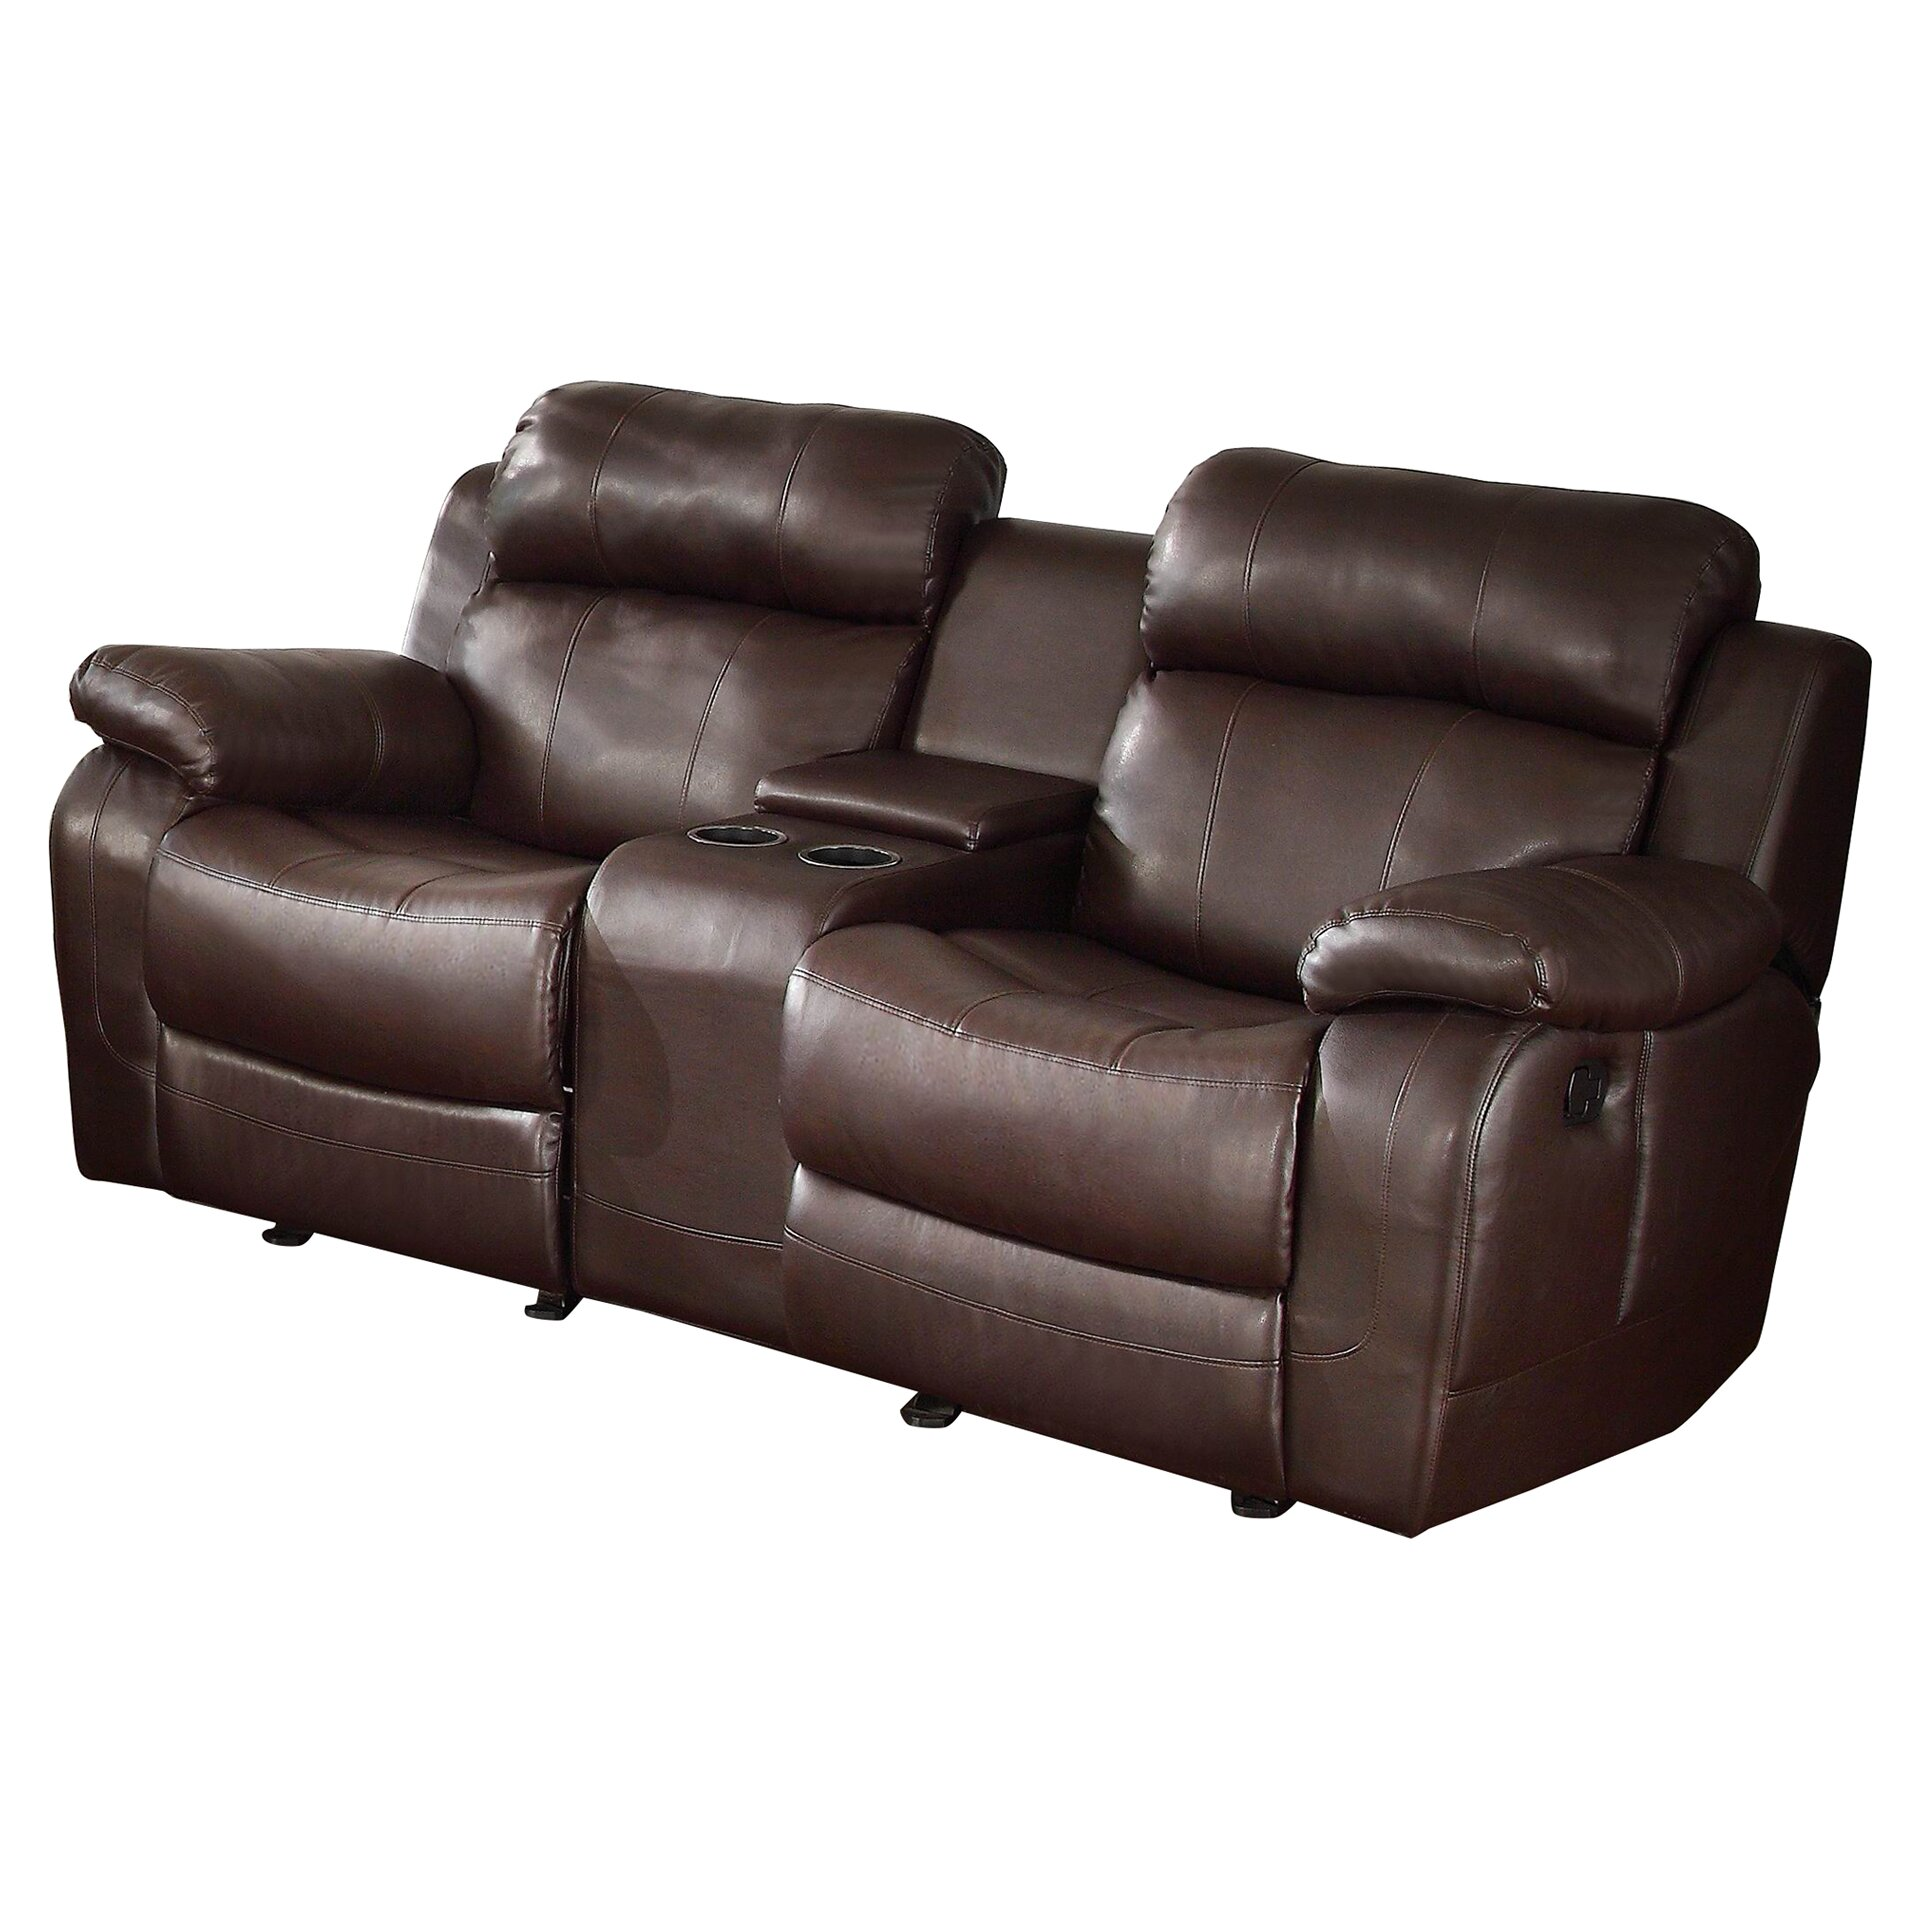 Darby Home Co Hall Glider Reclining Loveseat Reviews Wayfair